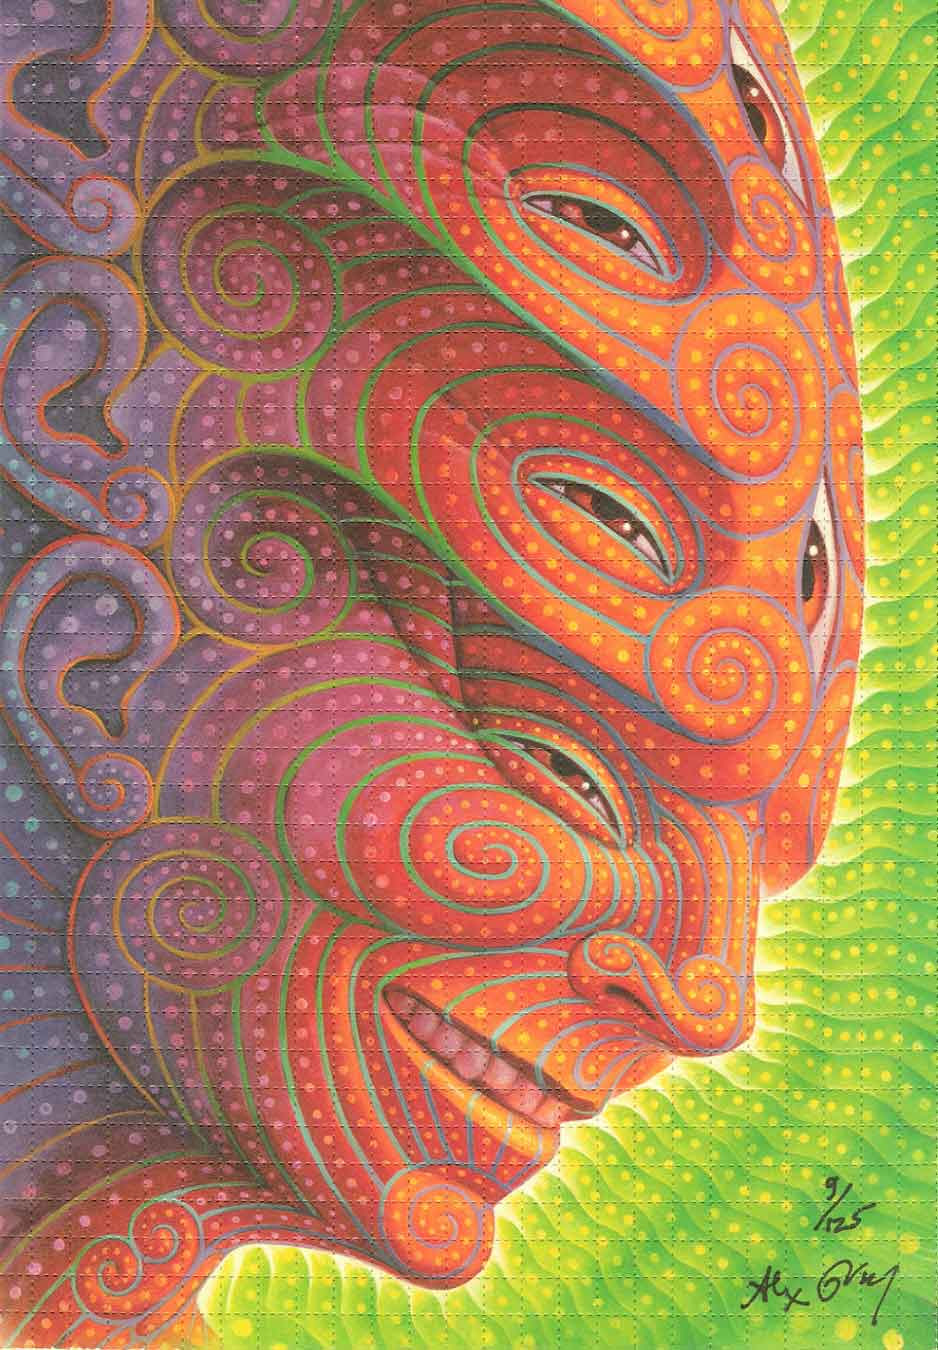 Alex Grey Signed, Numbered Shpongled Blotter Art